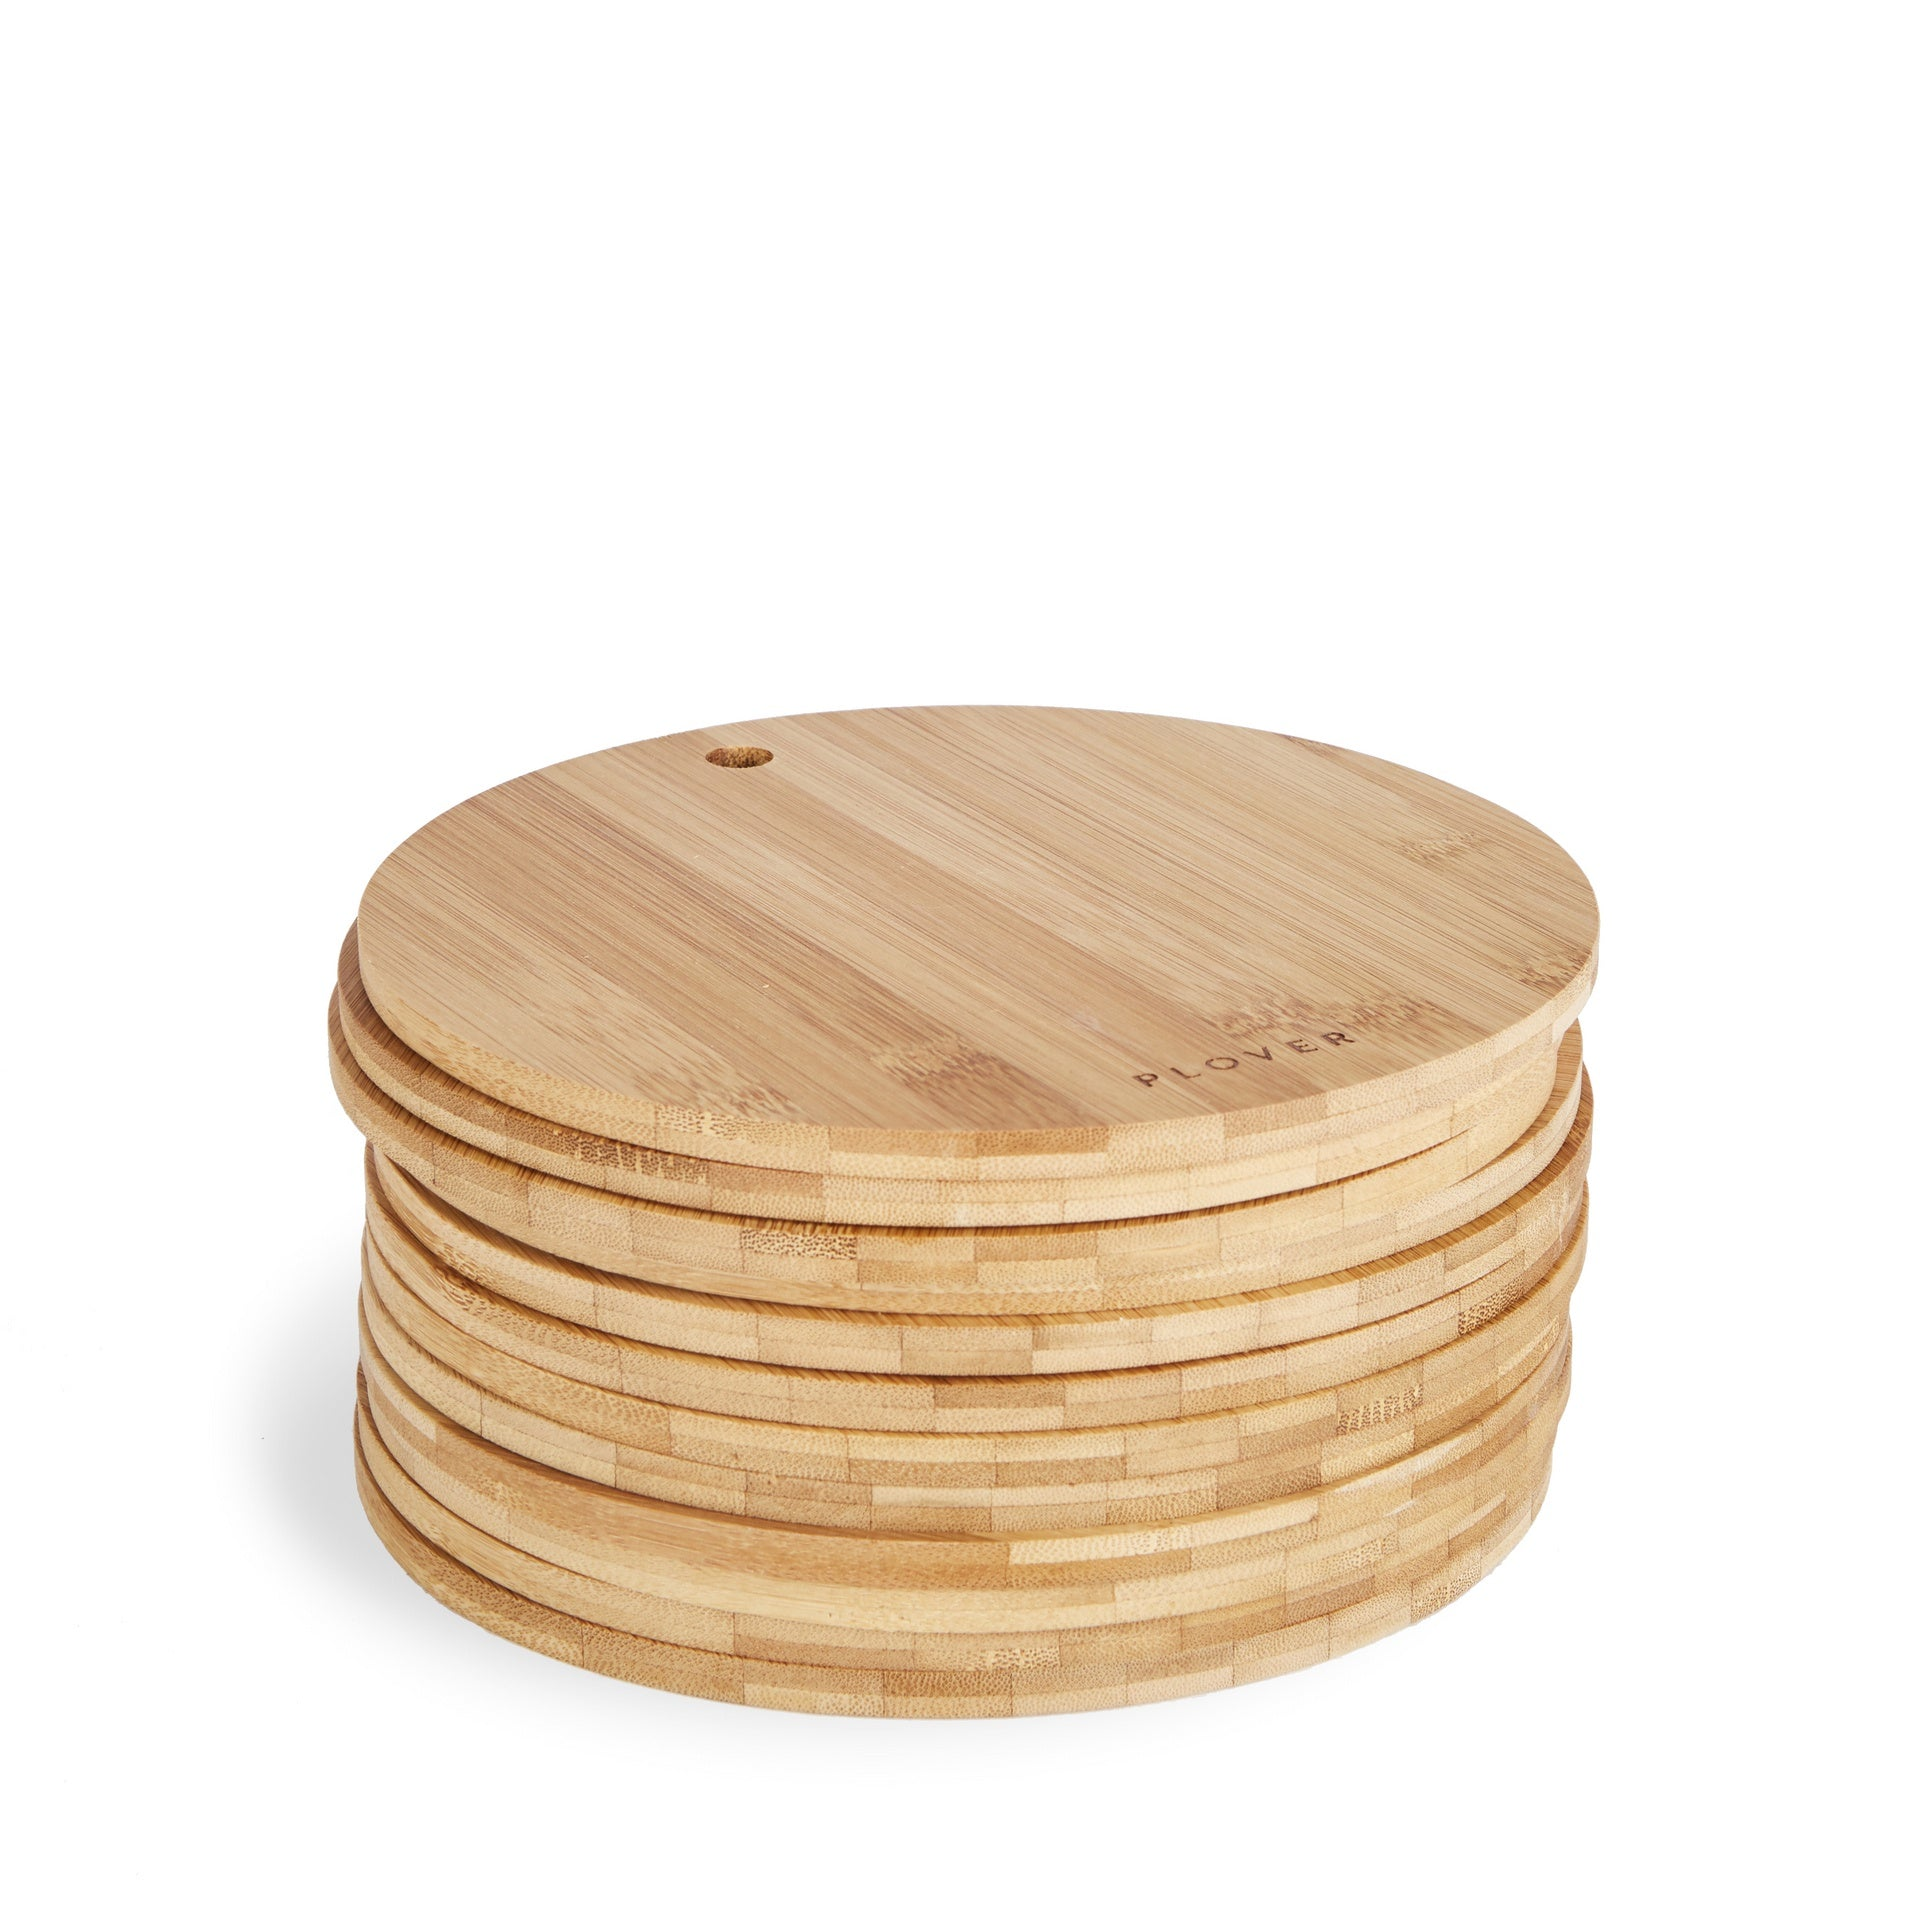 Plover Bamboo Single Plates